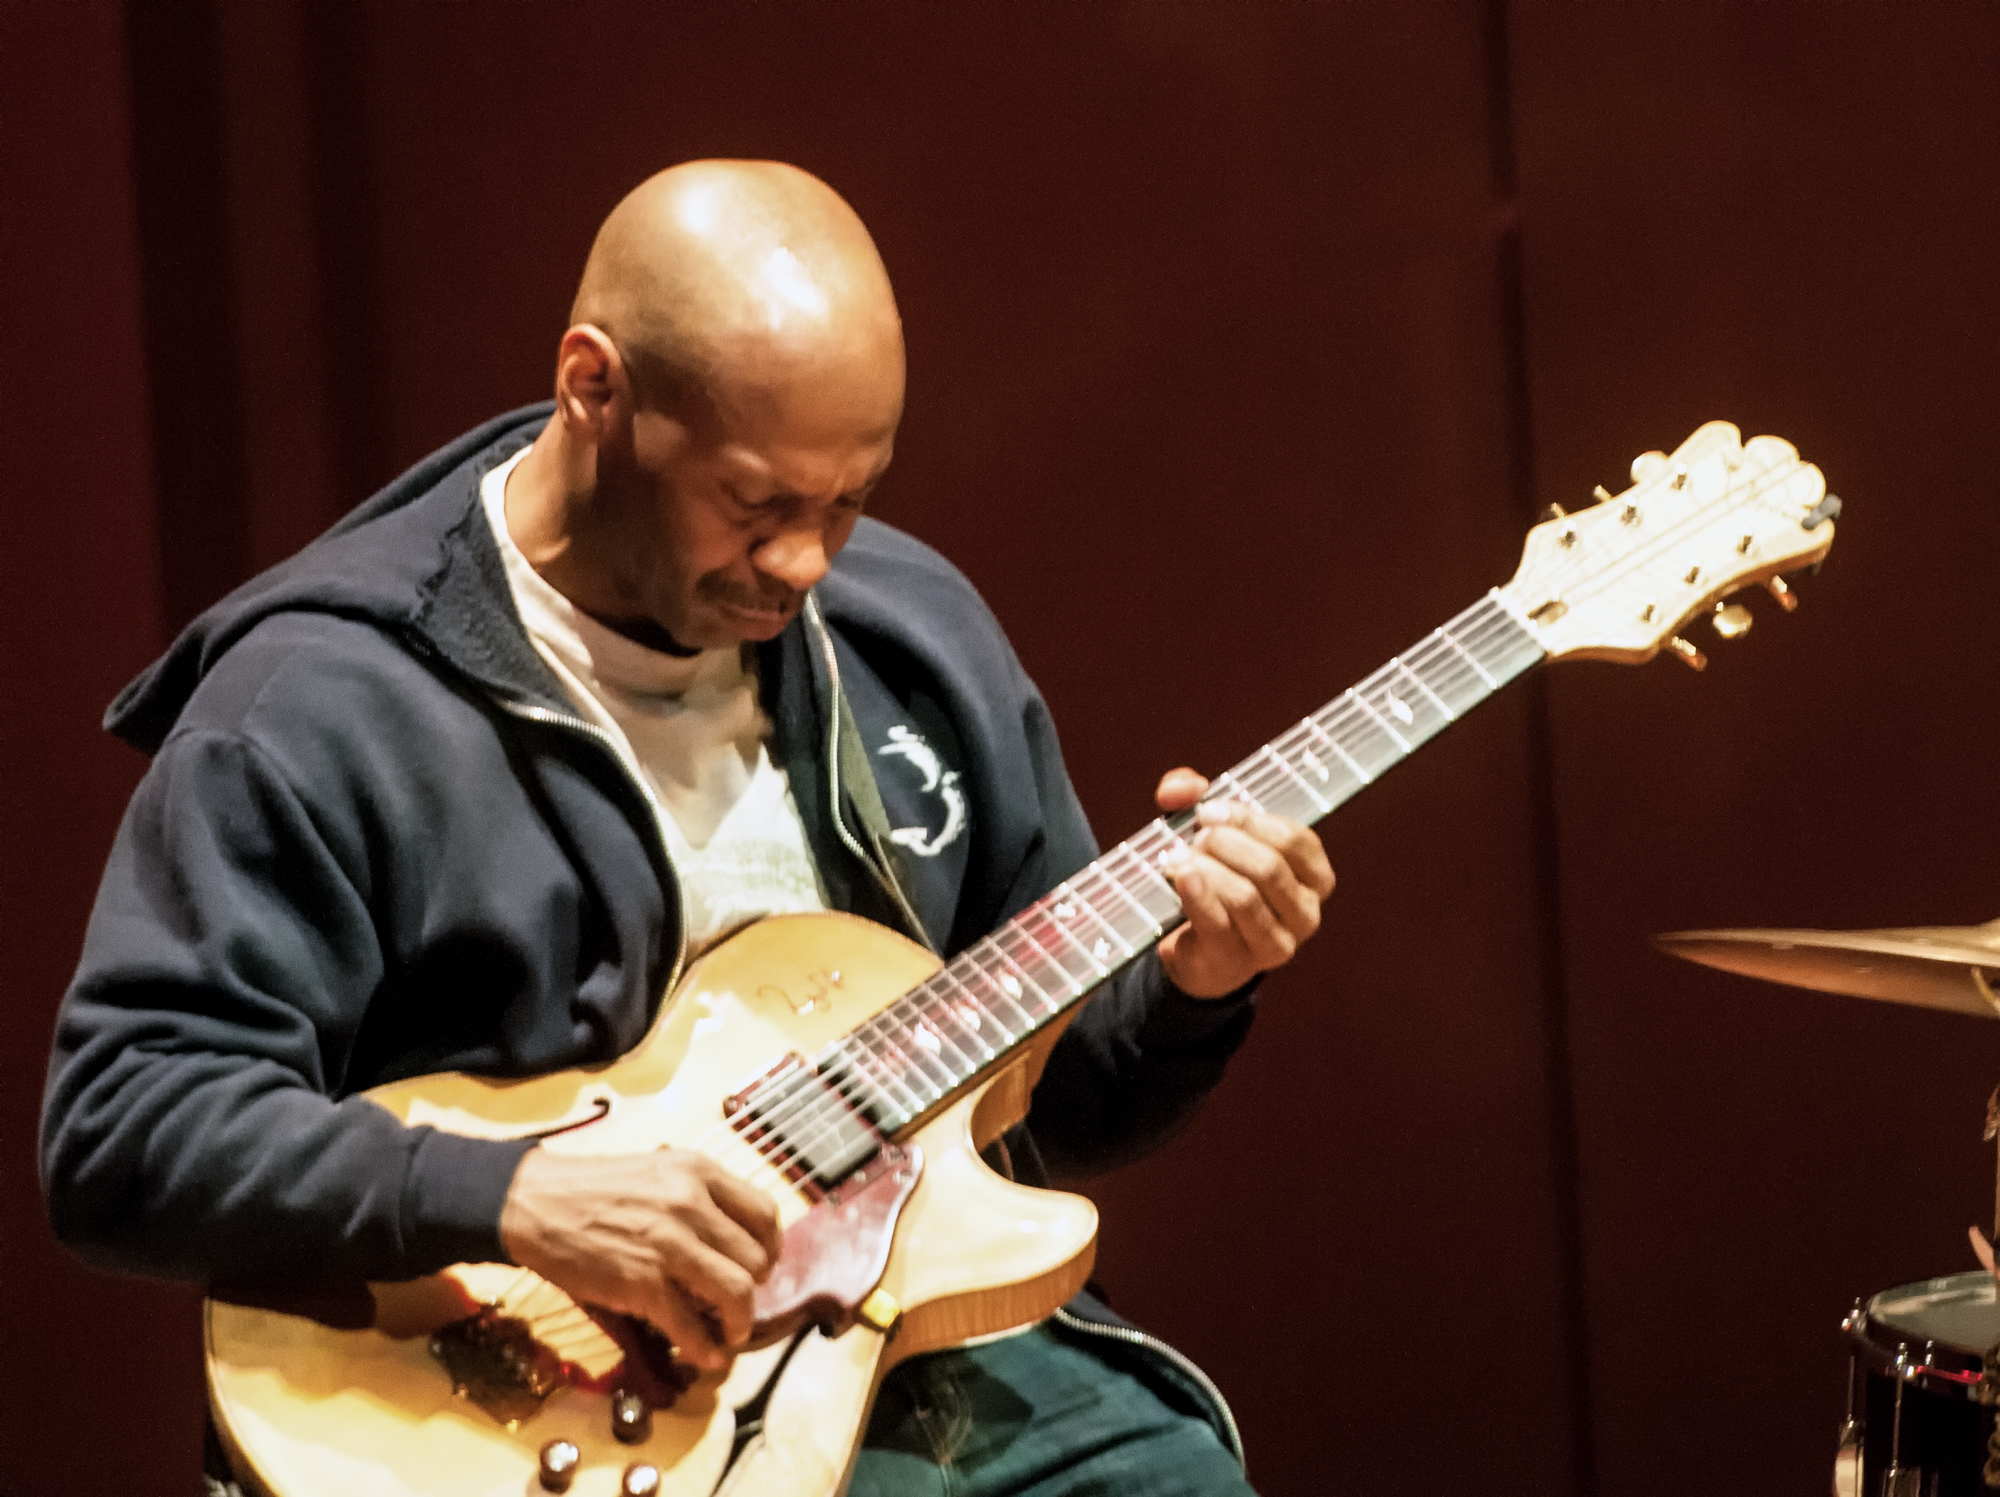 Kevin Eubanks With Dave Holland And Prism At The Musical Instruments Museum (mim) In Phoenix